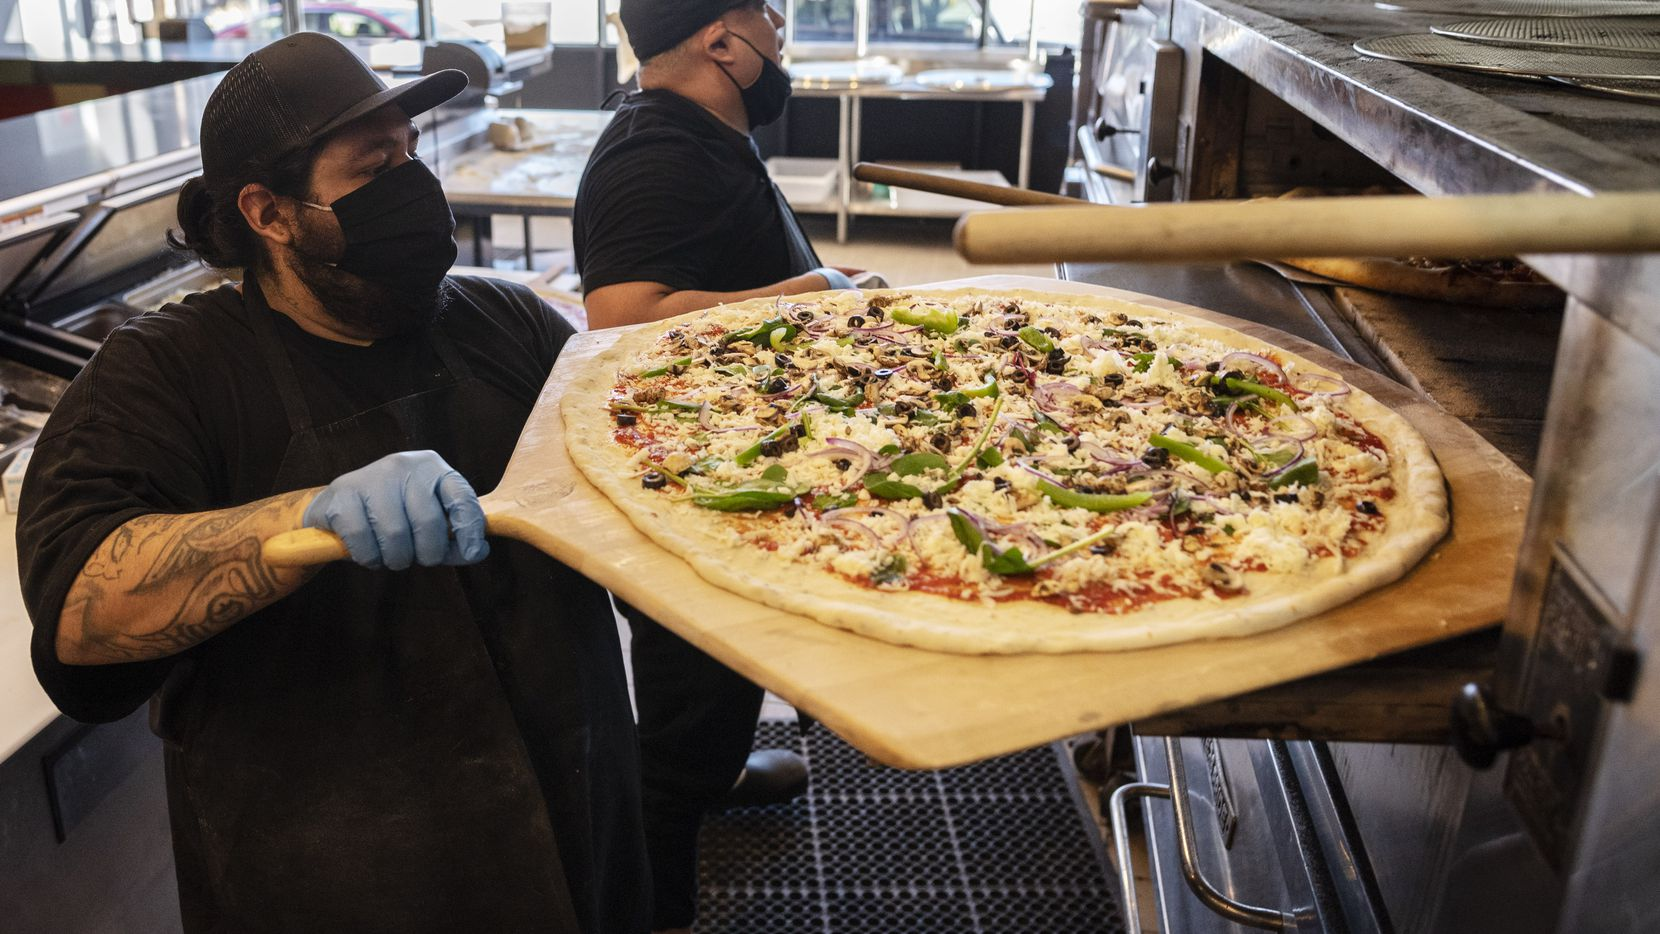 Juan Delgado, left, loads a veggie pizza into the oven while working alongside pizza maker Nick Flores, right, at the redesigned Serious Pizza in Deep Ellum. The Dallas restaurant reopened Feb. 26, 2021 under new ownership.